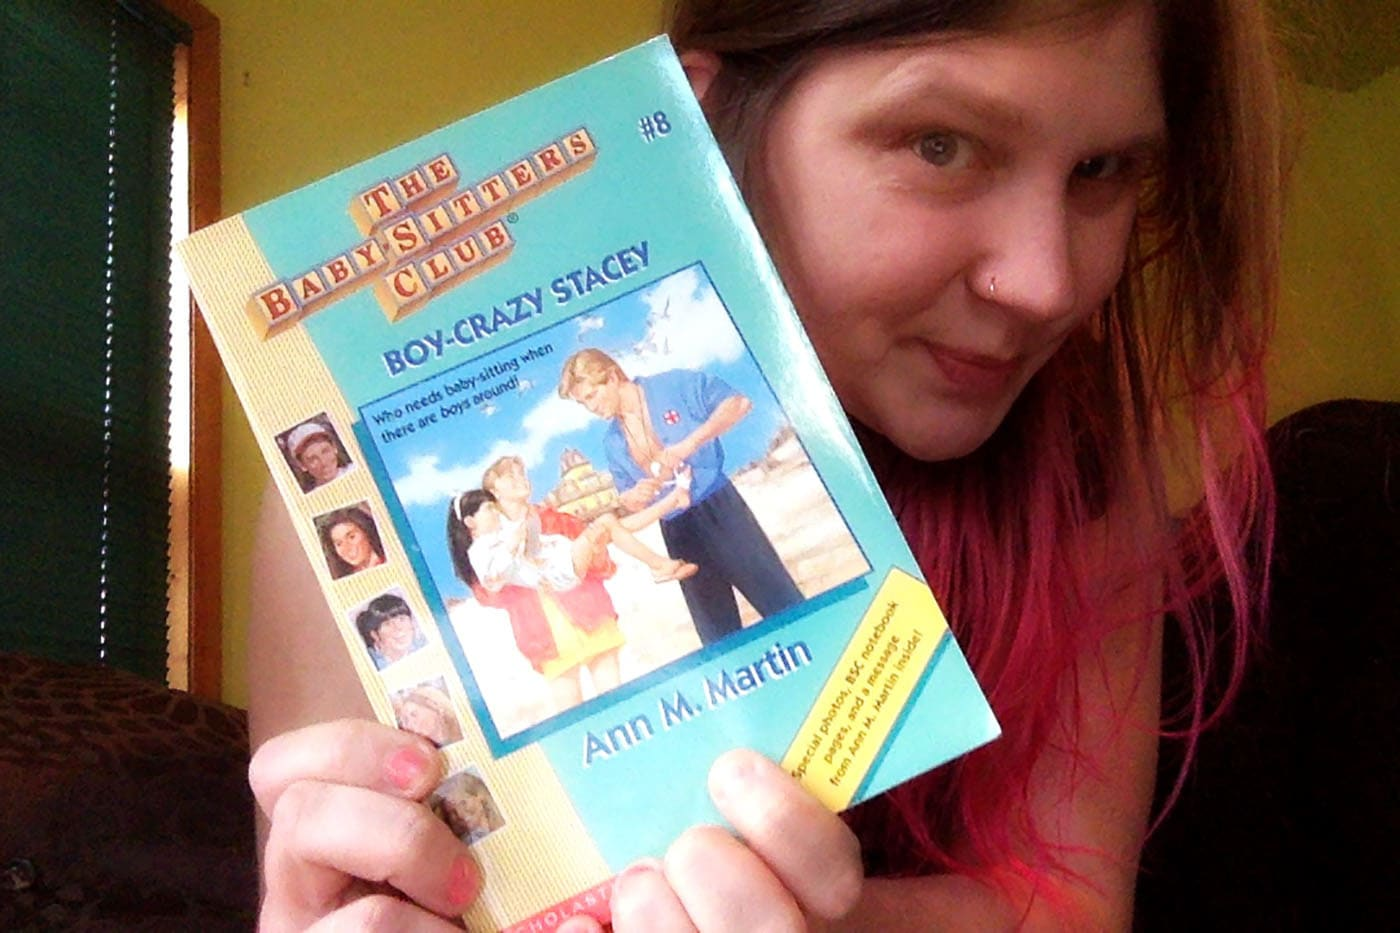 Baby-Sitters Club 8 - Boy-Crazy Stacey